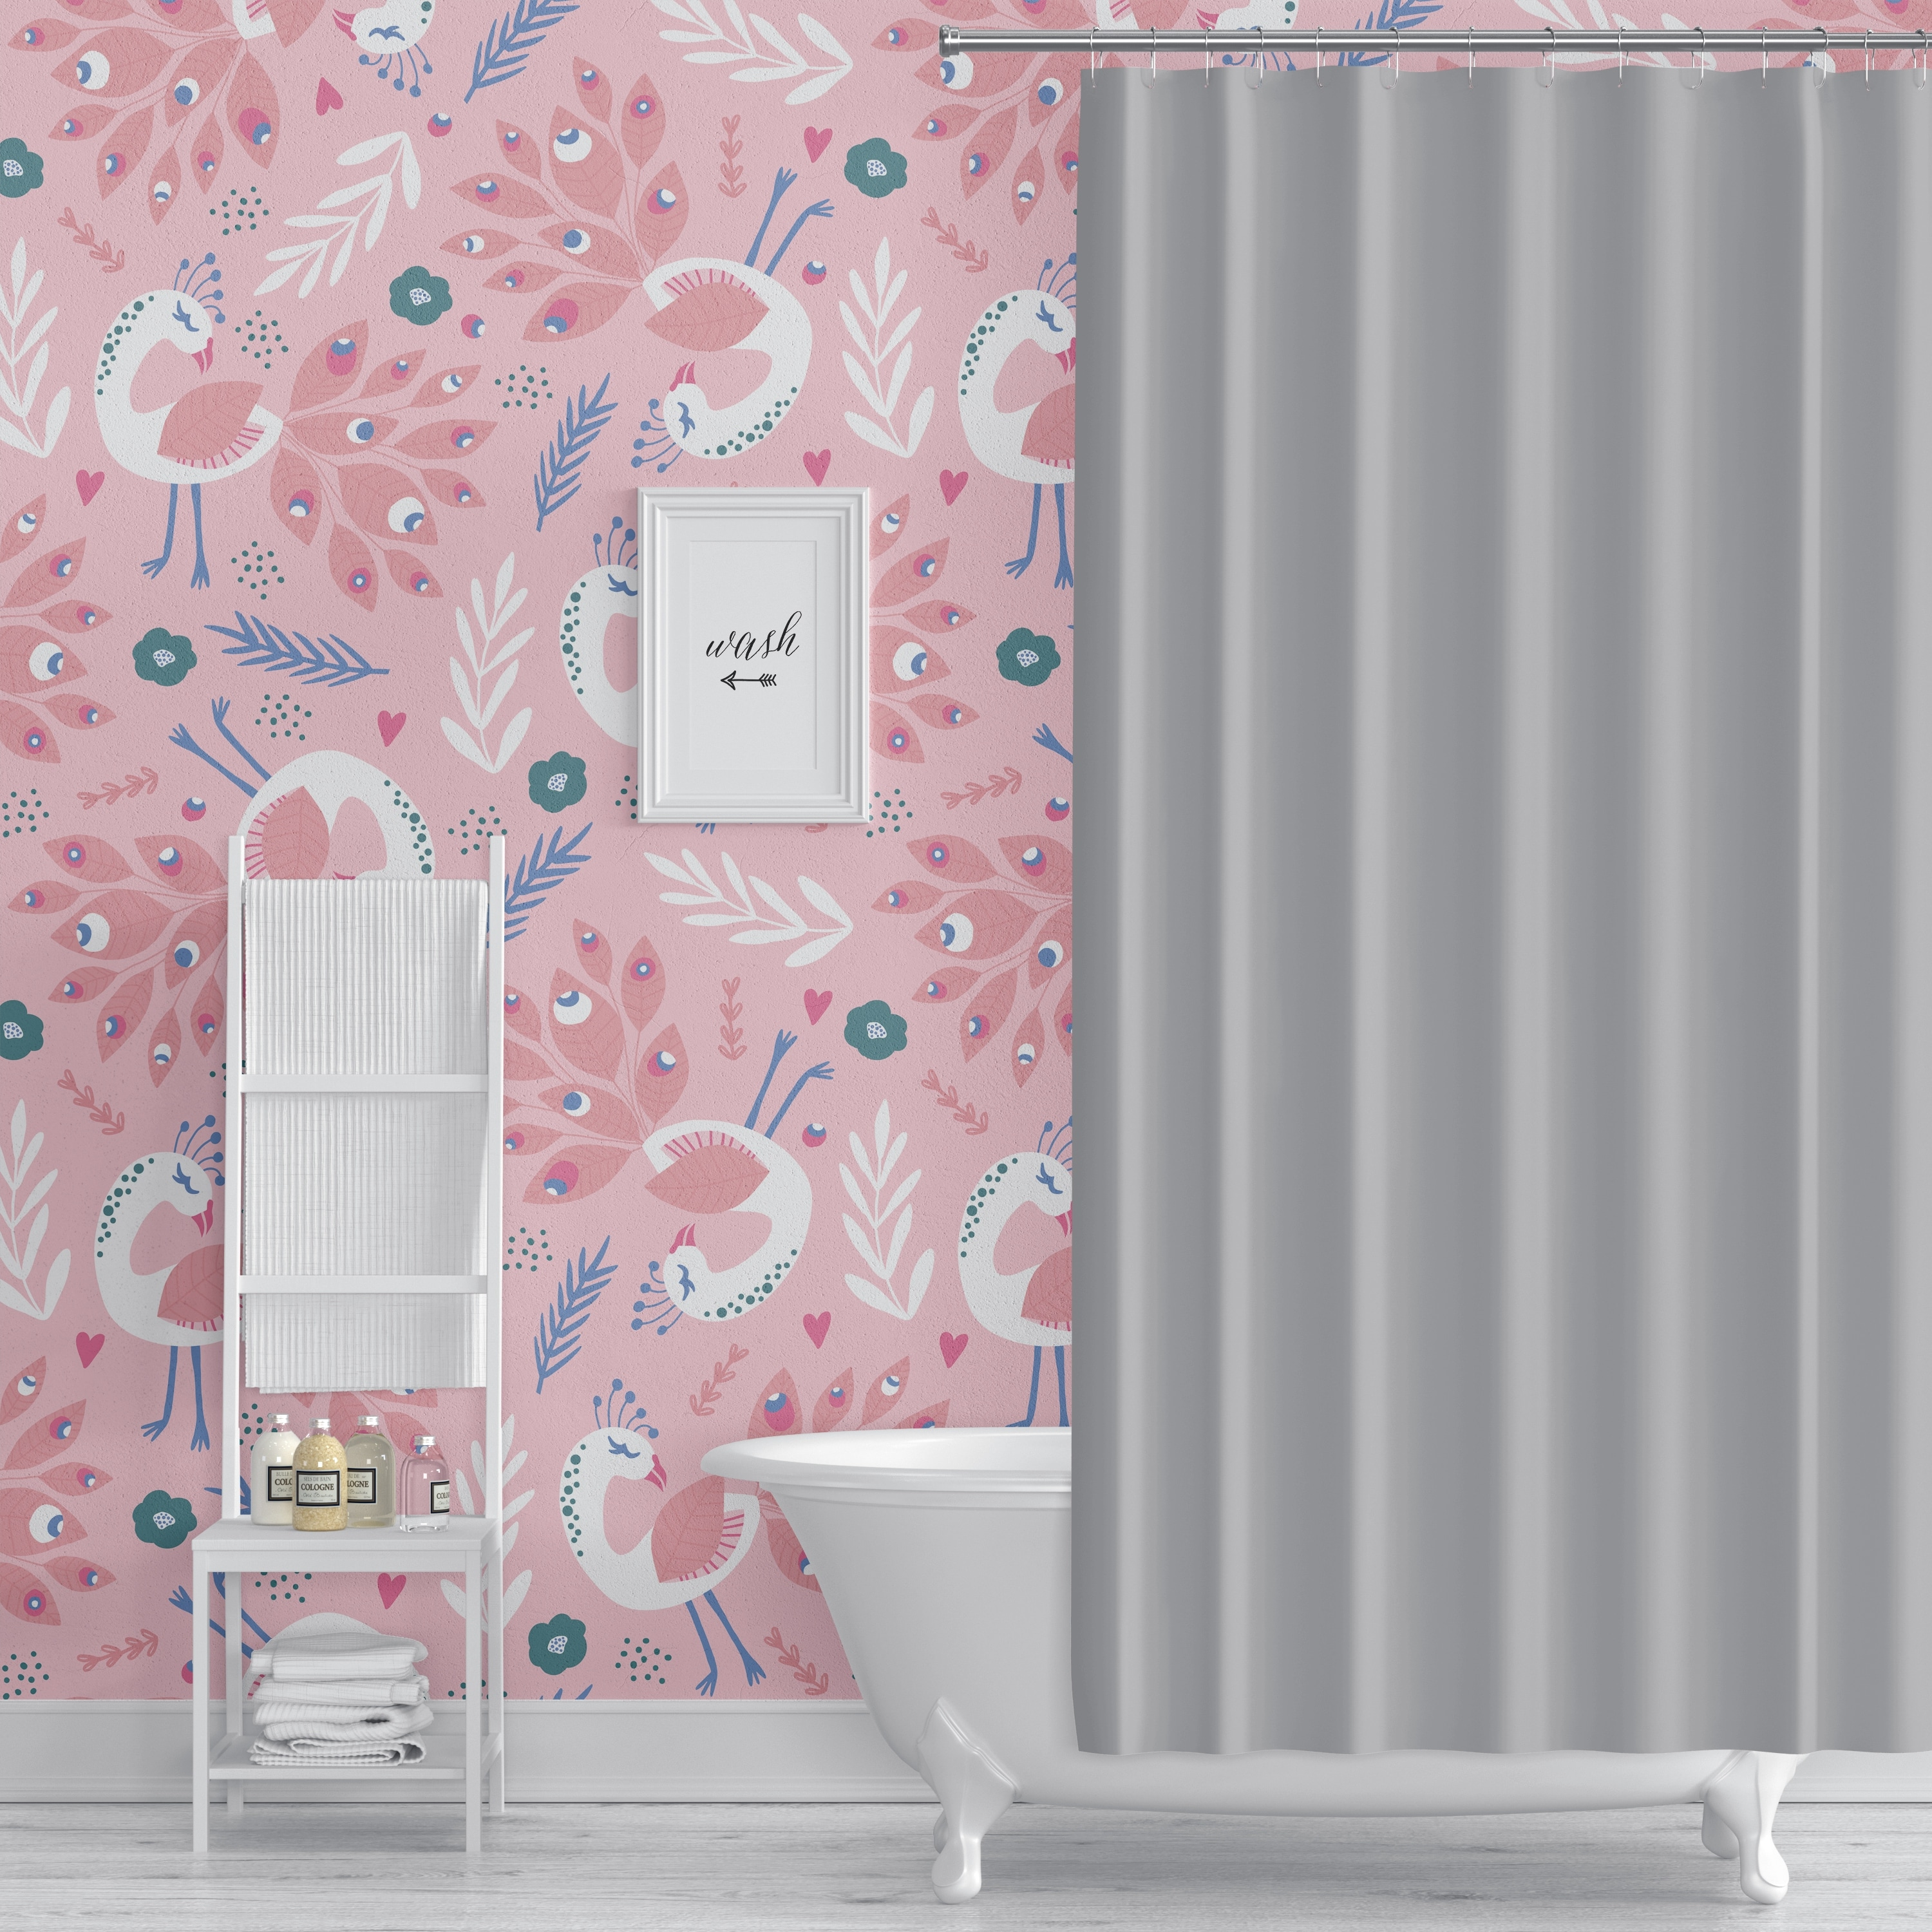 Shop Peacock Pink Peel And Stick Wallpaper By Kavka Designs 2 X 16 On Sale Overstock 31638051